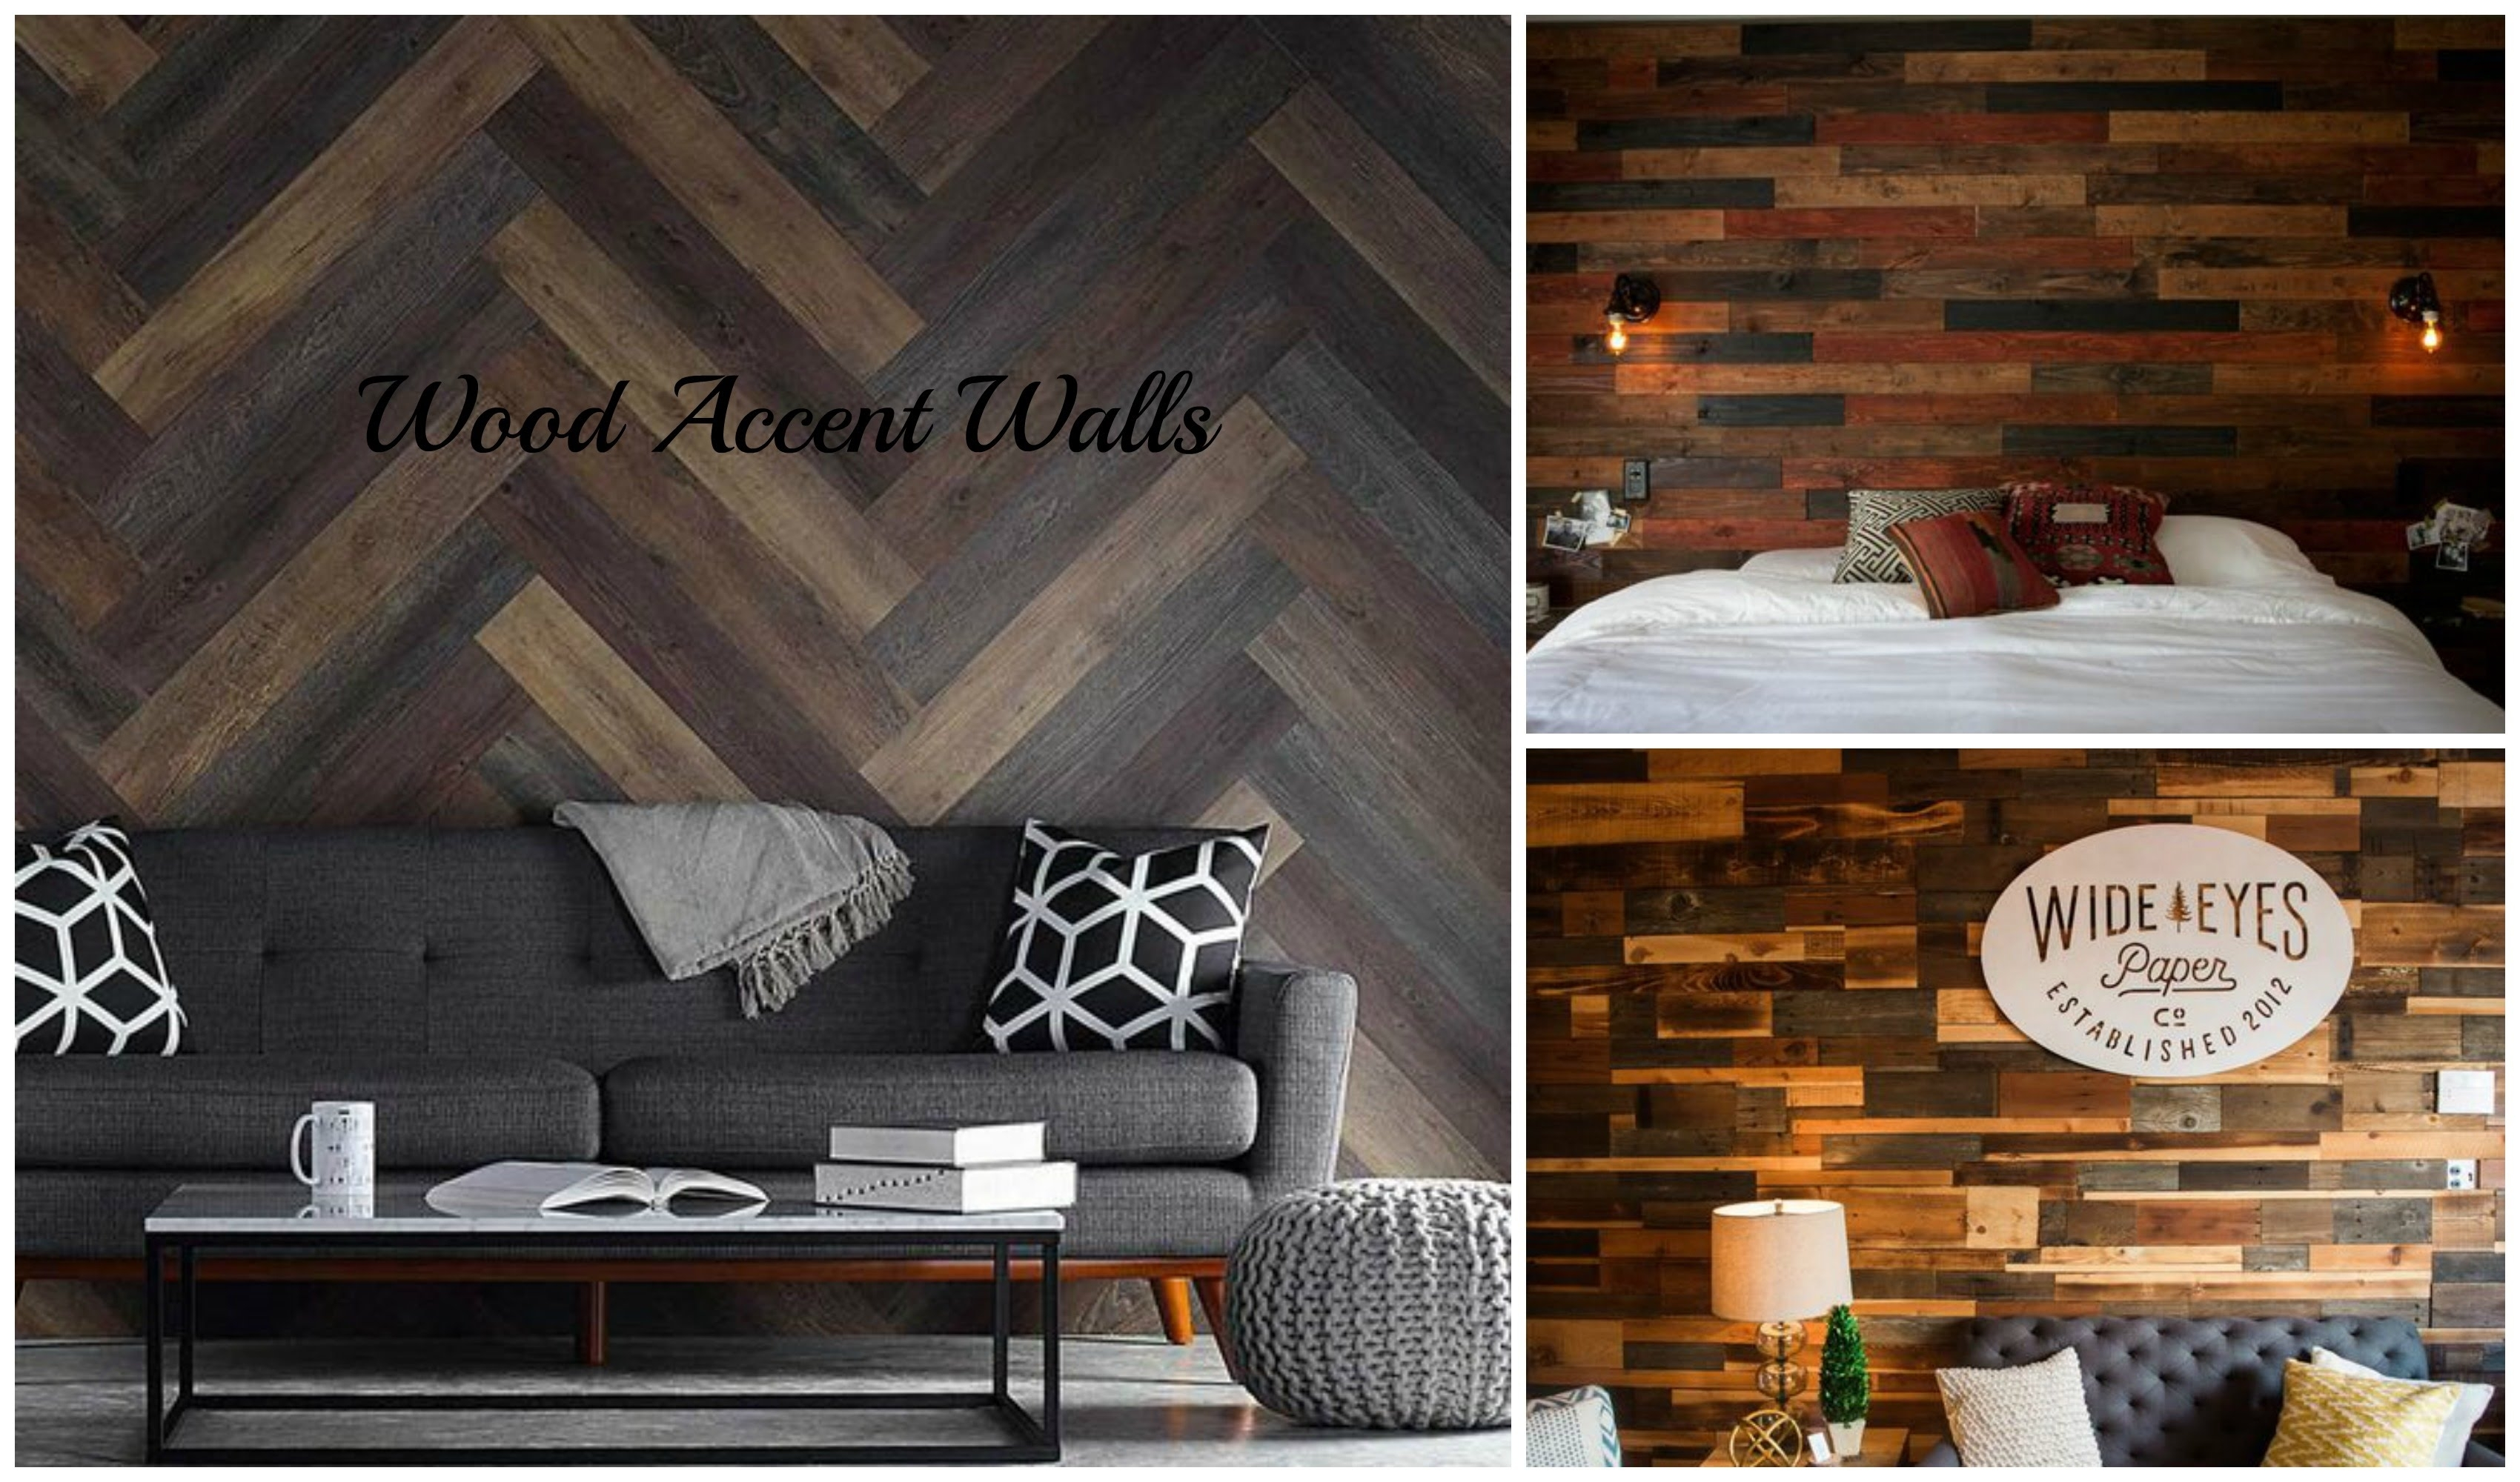 Wood Accent Wall | Pallet Wall Ideas – Youtube With Regard To Most Recently Released Wood Wall Accents (View 9 of 15)